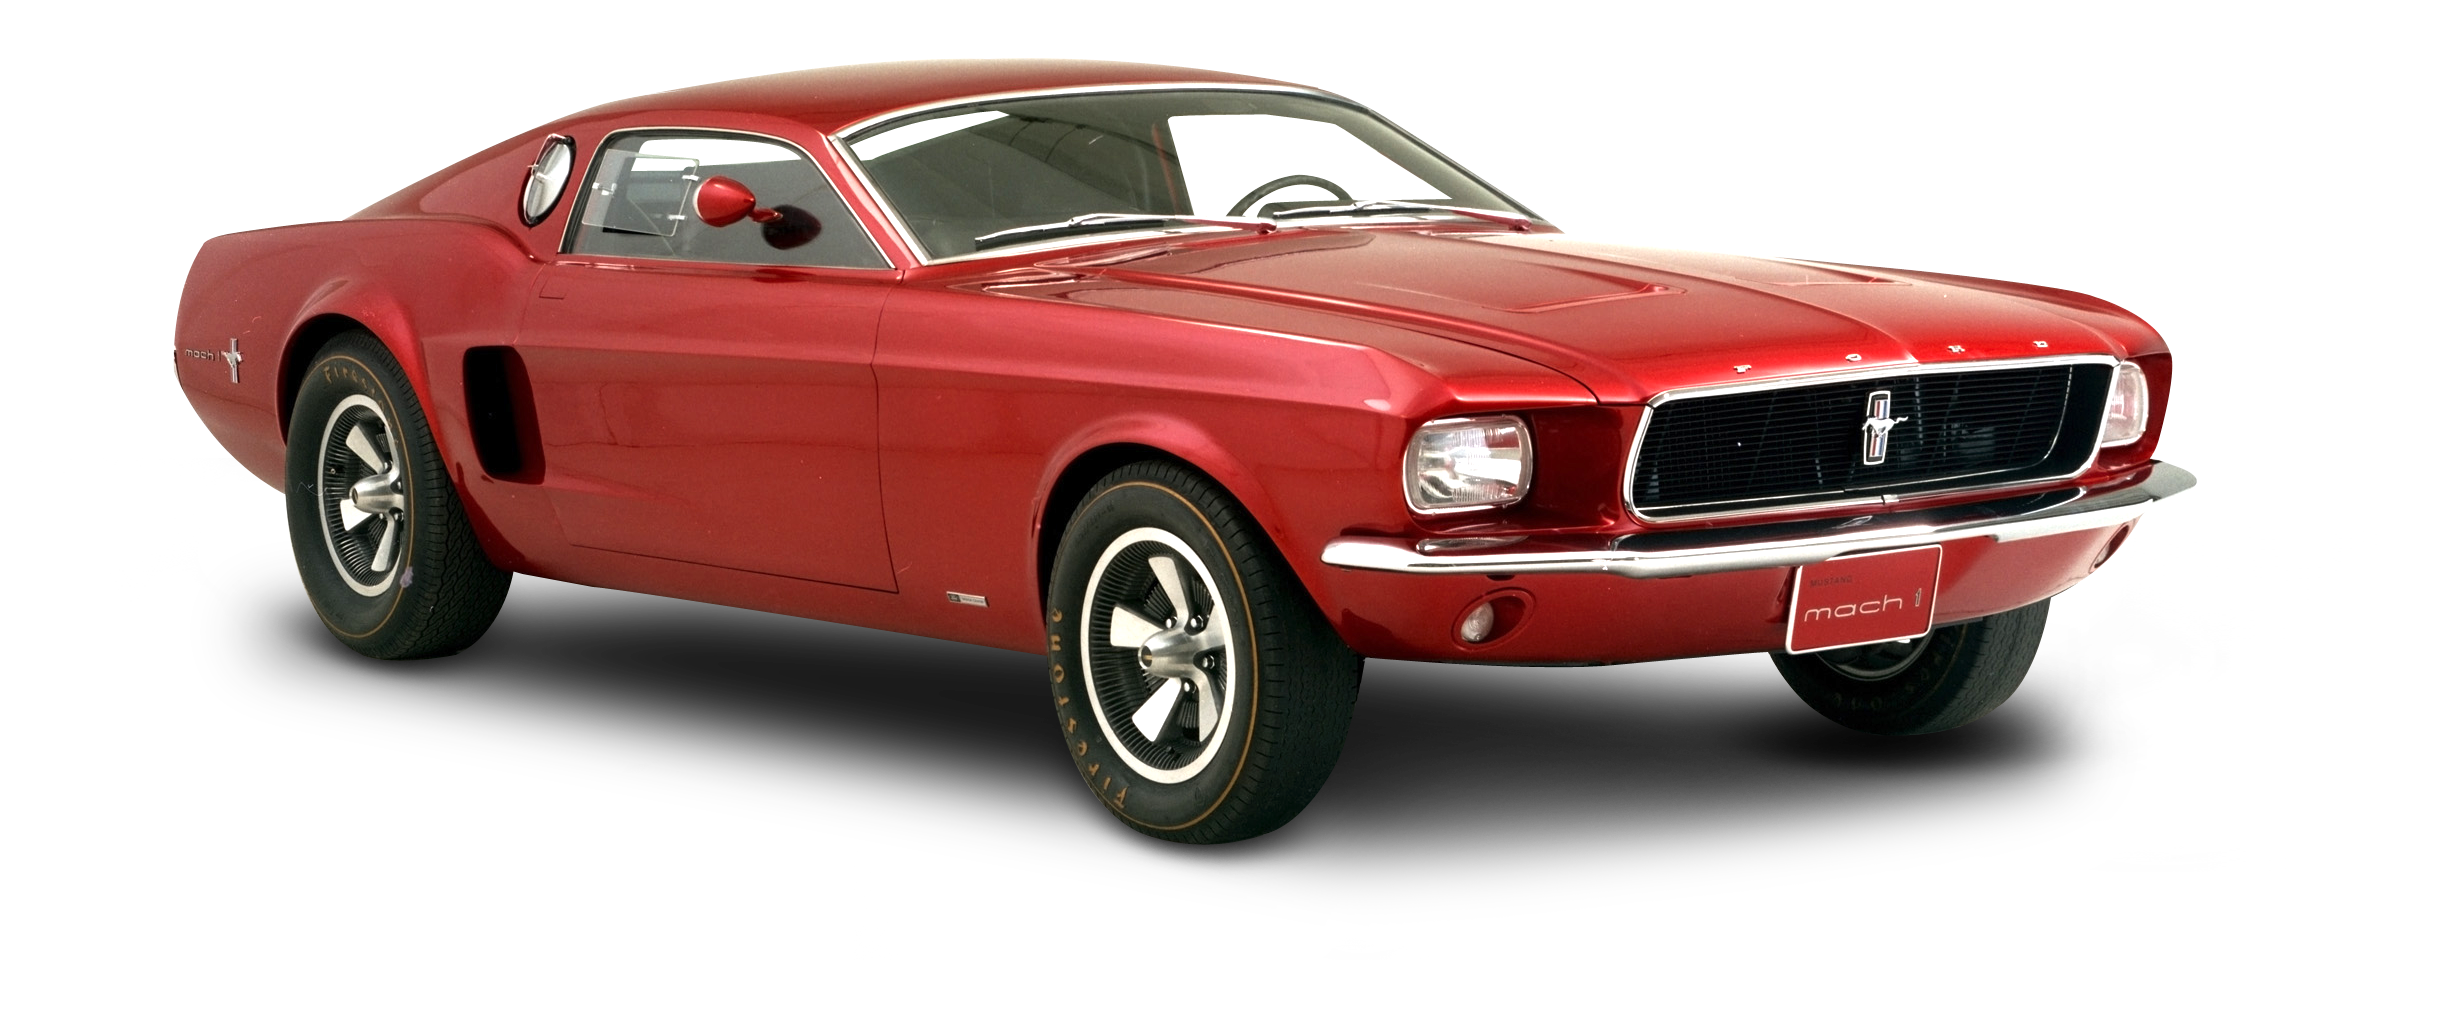 Red Ford Mustang Mach Car Png Image Car Ford Mustang Mustang